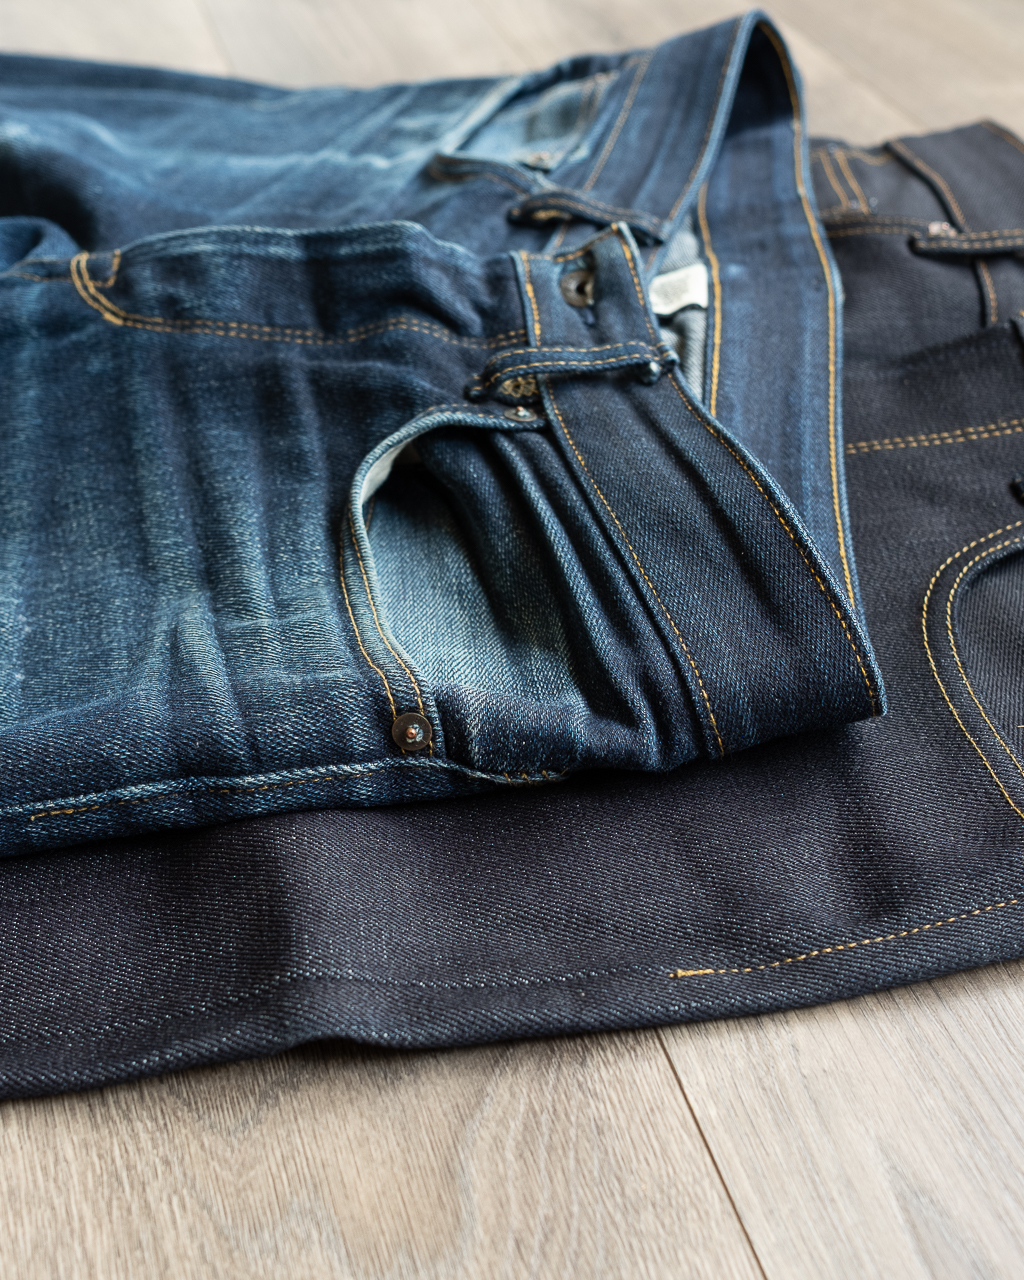 fade comparison between new railcar fine goods x034 denim and two year old pair